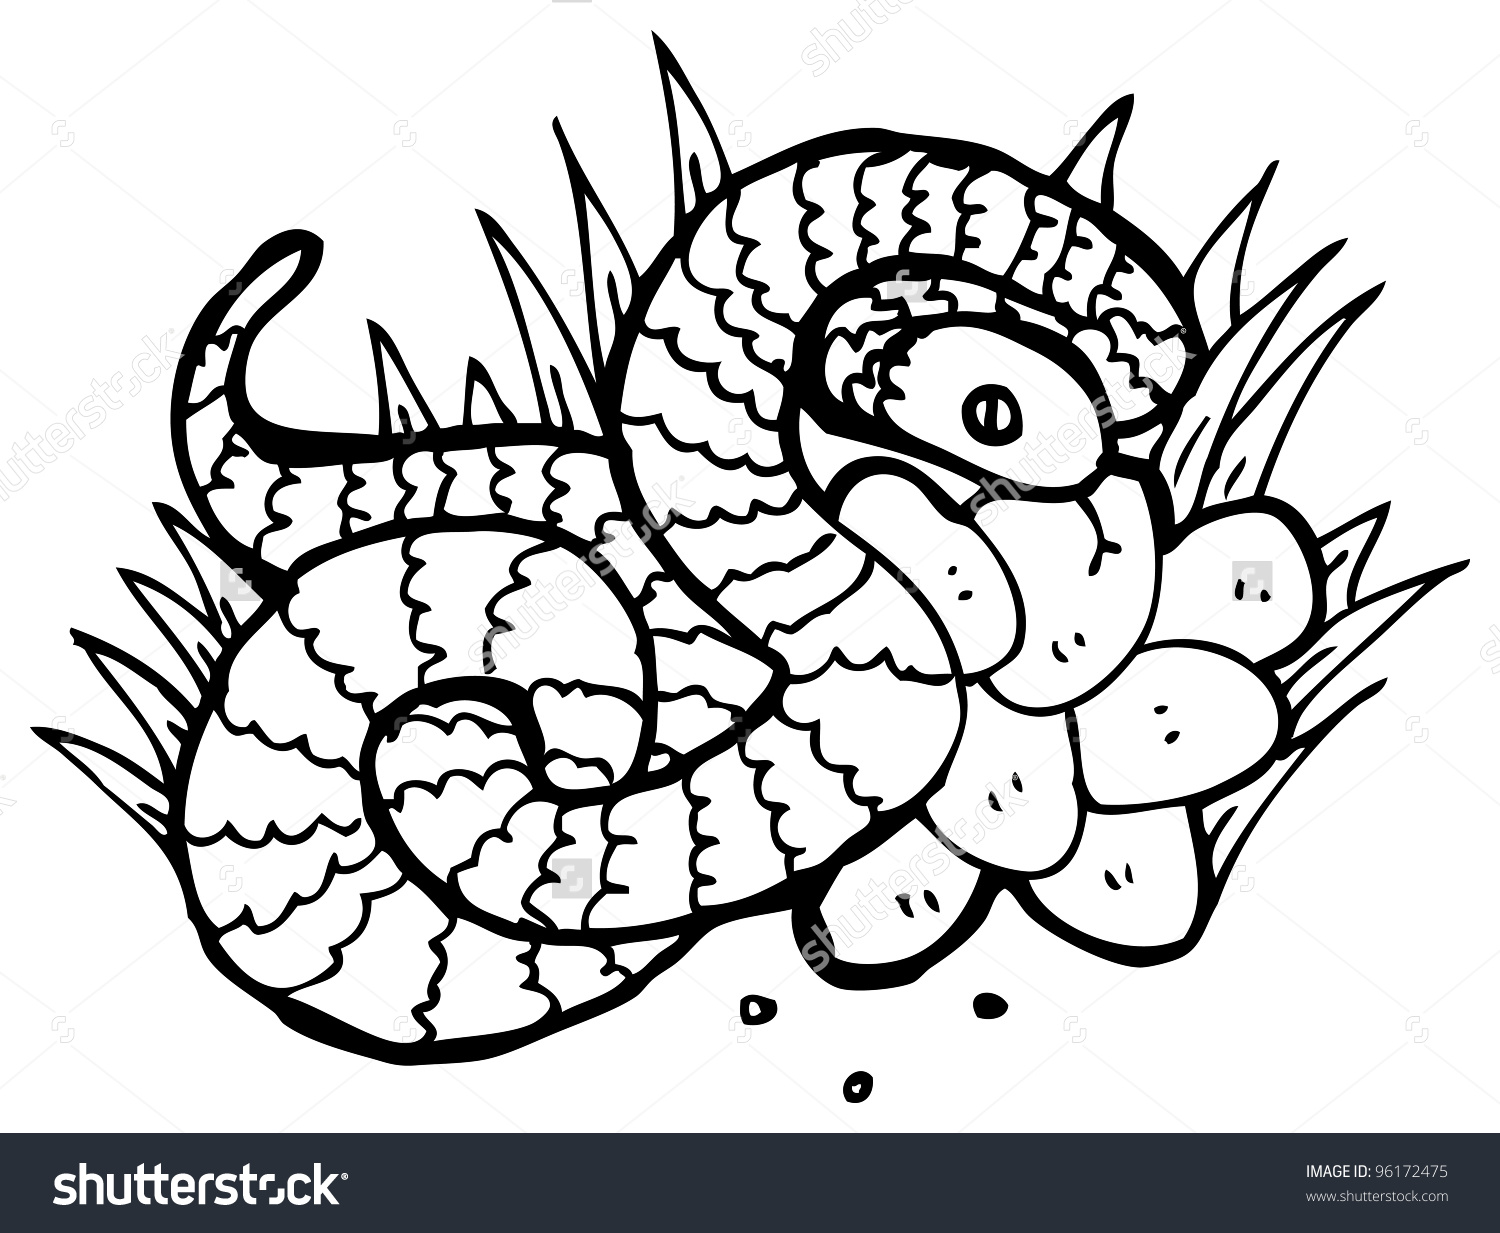 Snake Nest Eggs Illustration Stock Illustration 96172475.